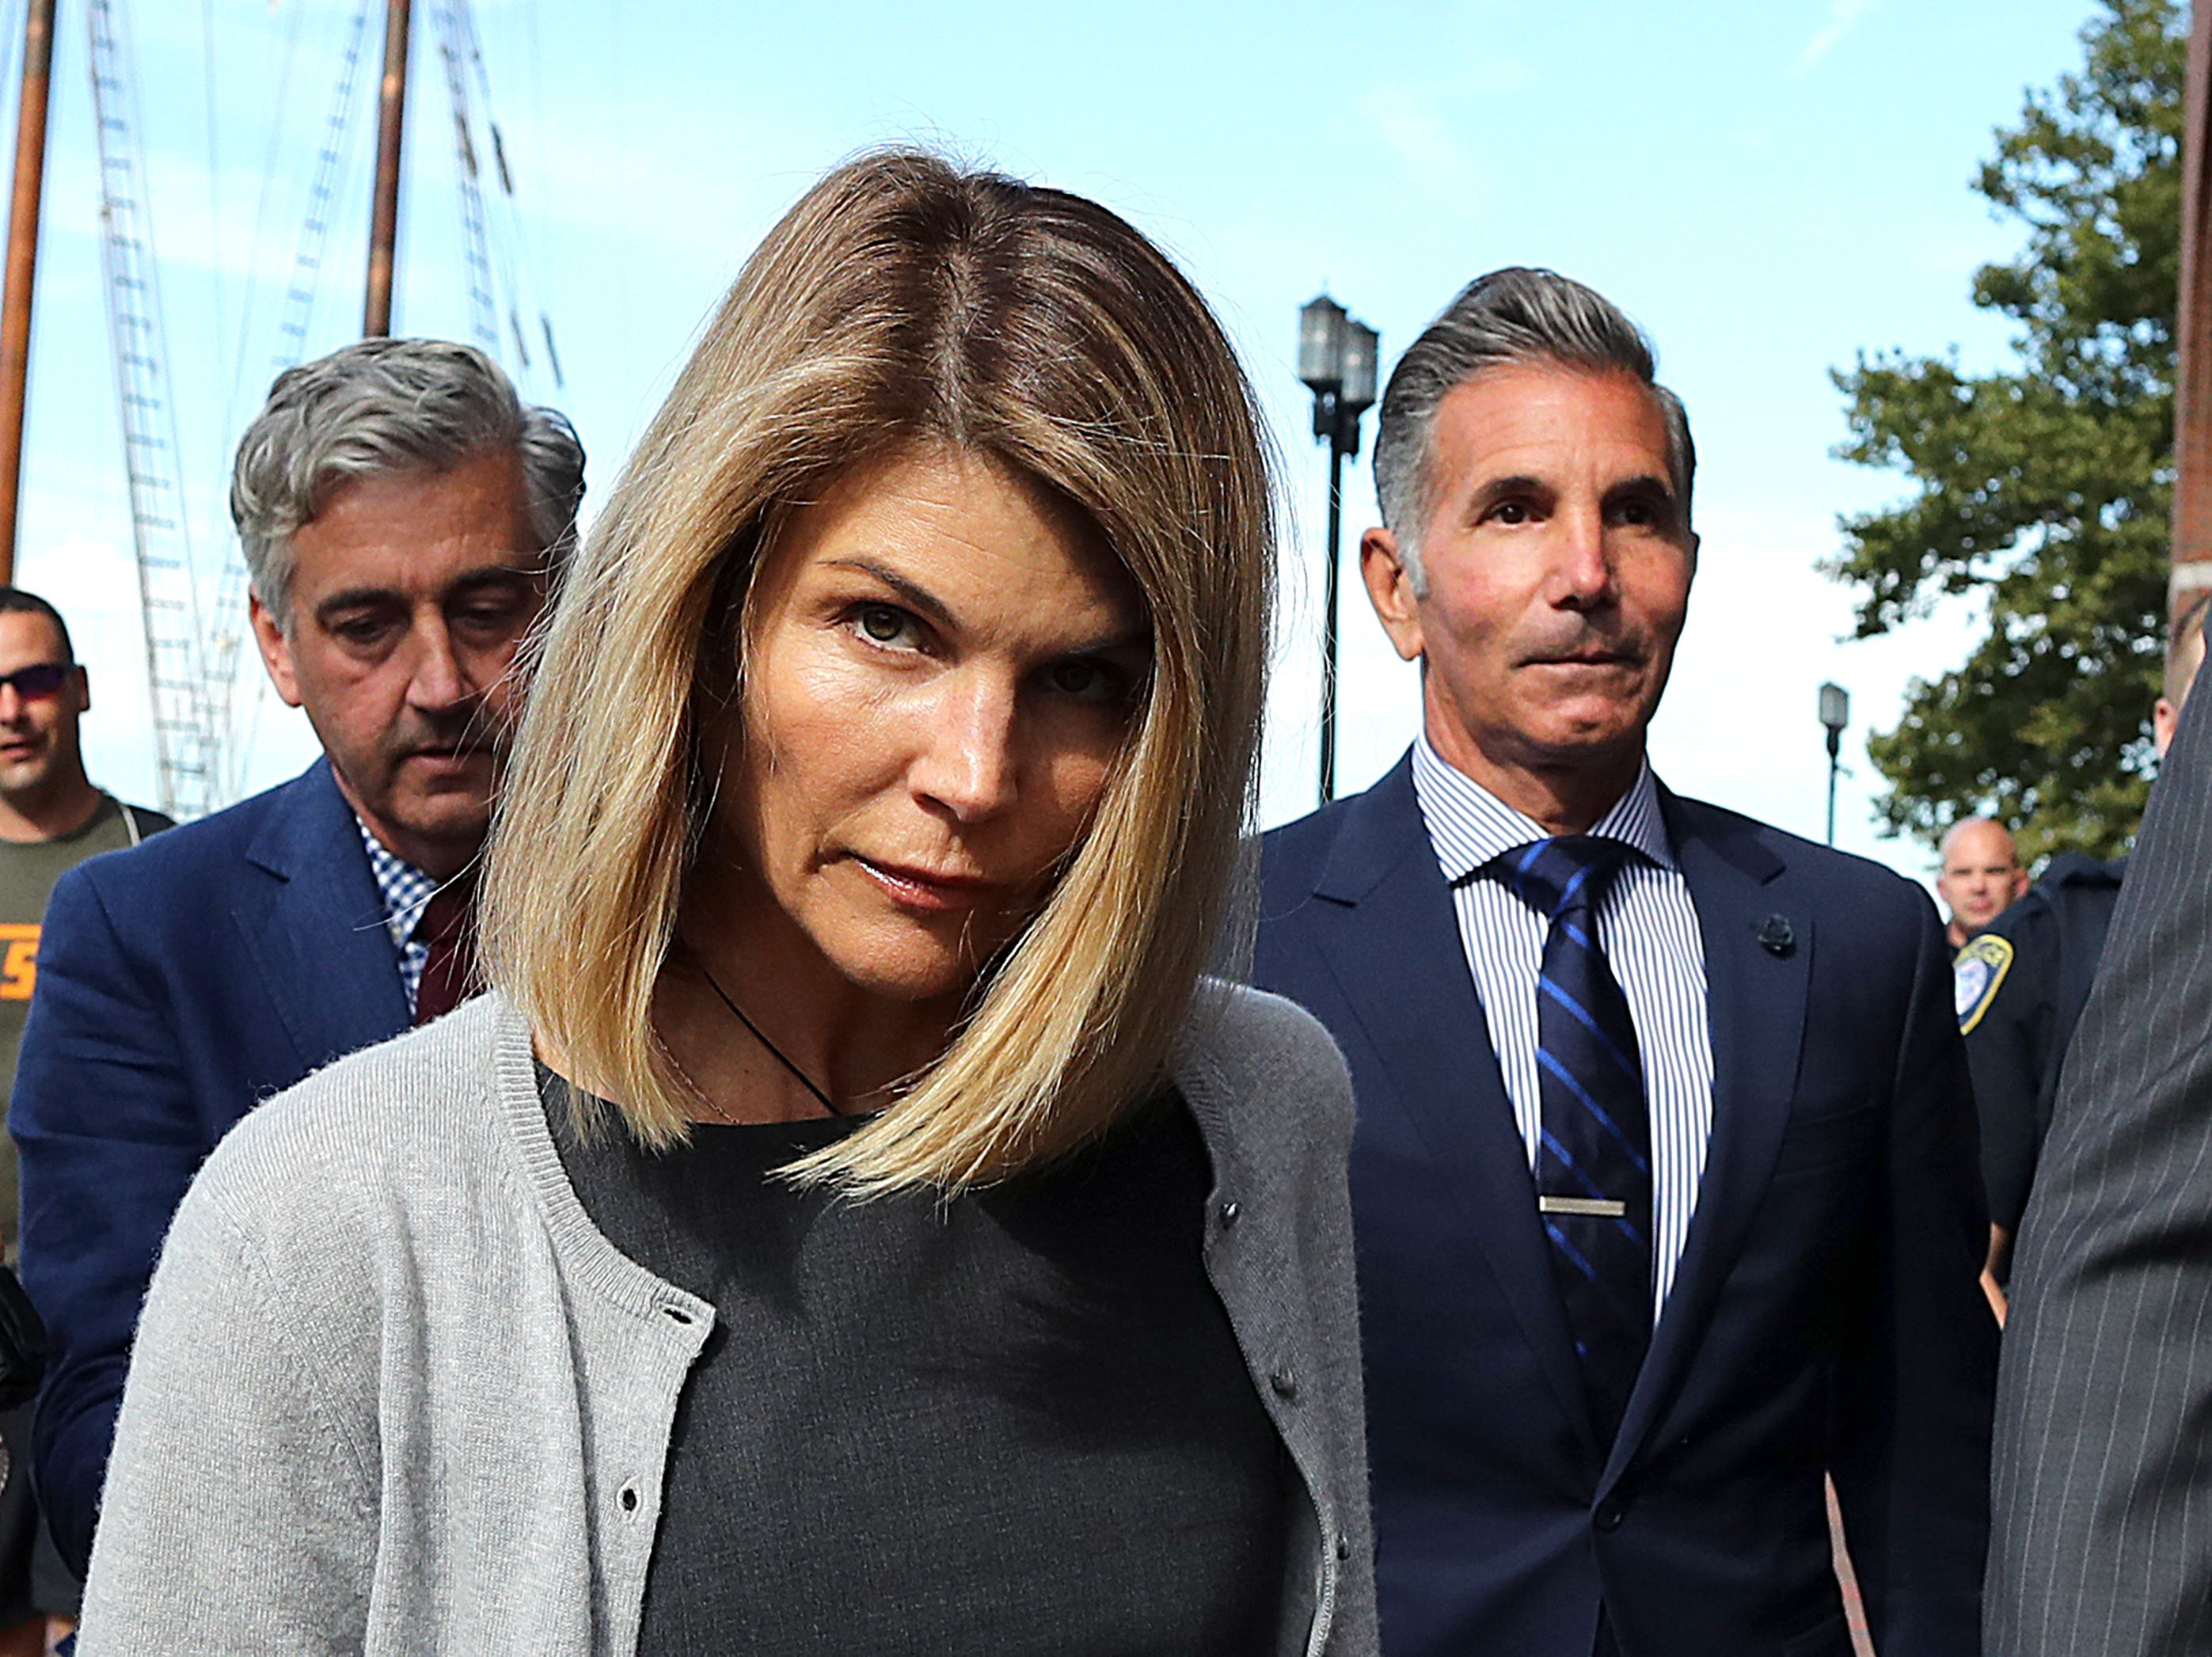 Lori Loughlin and her husband Mossimo Giannulli pictured outside the John Joseph Moakley United States Courthouse, 2019, Boston. | Photo: Getty Images